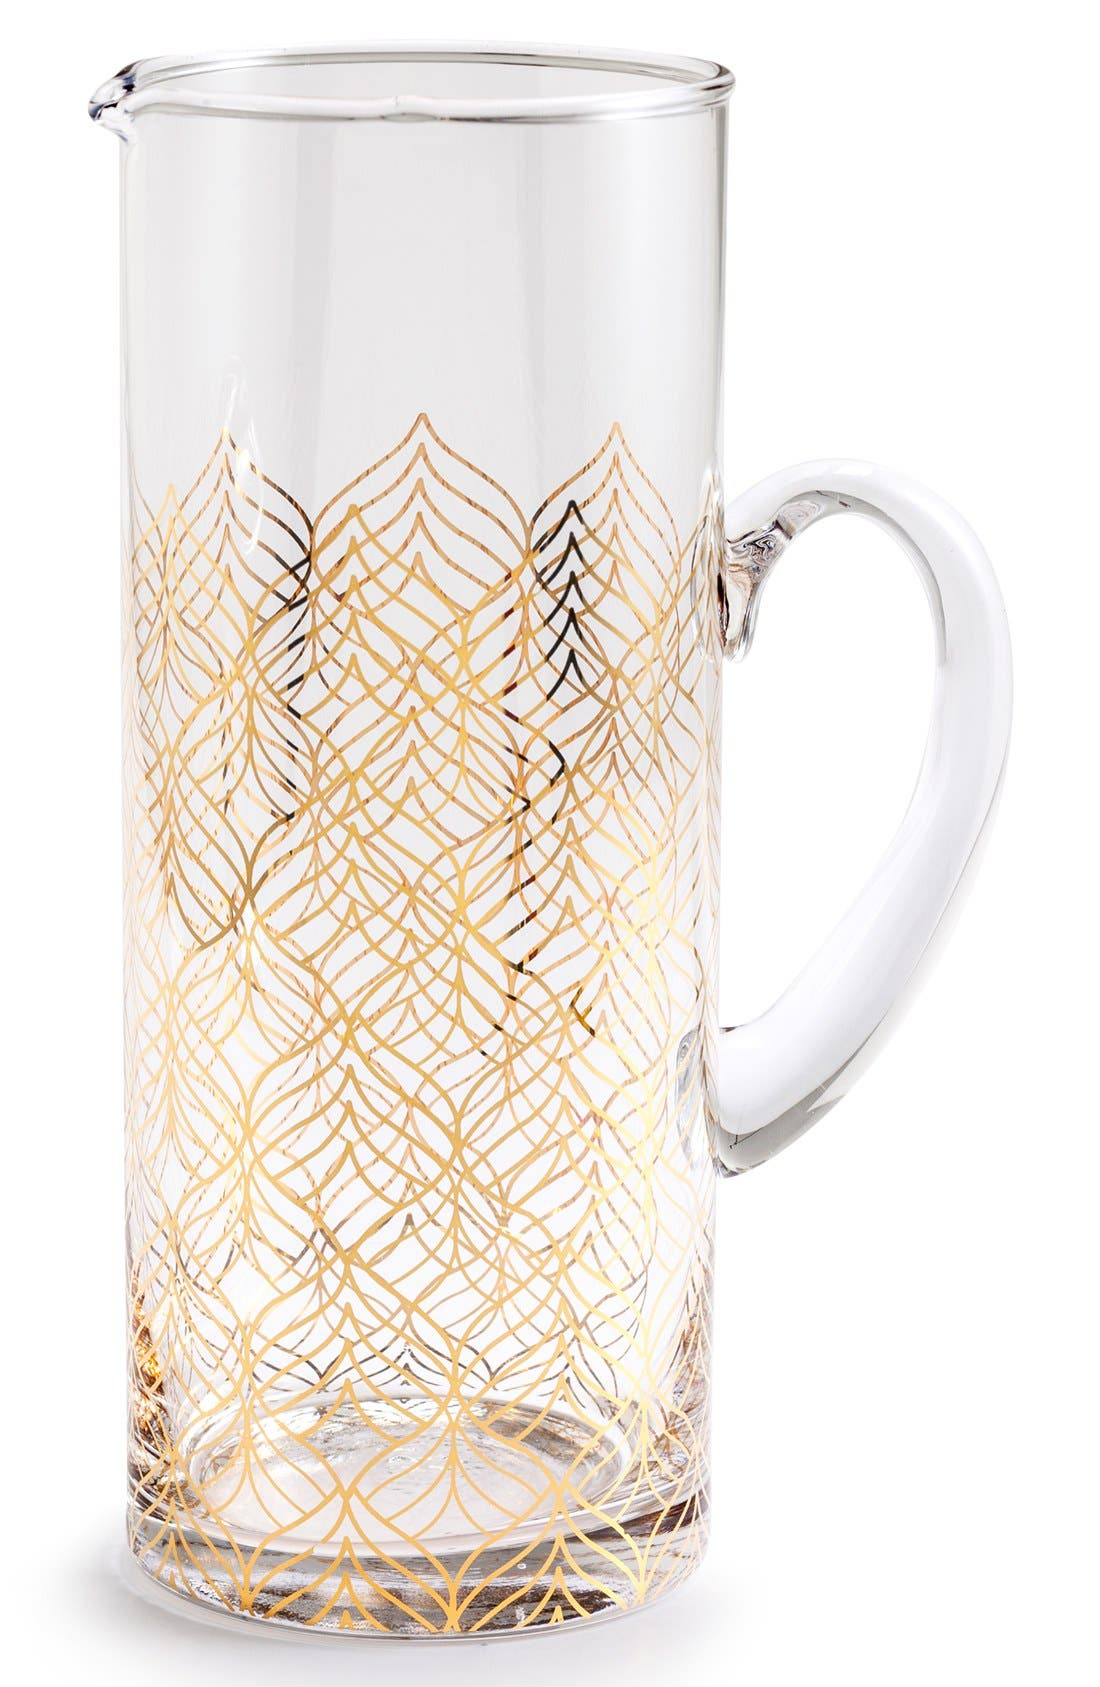 Rosanna 'La Cite' Pitcher